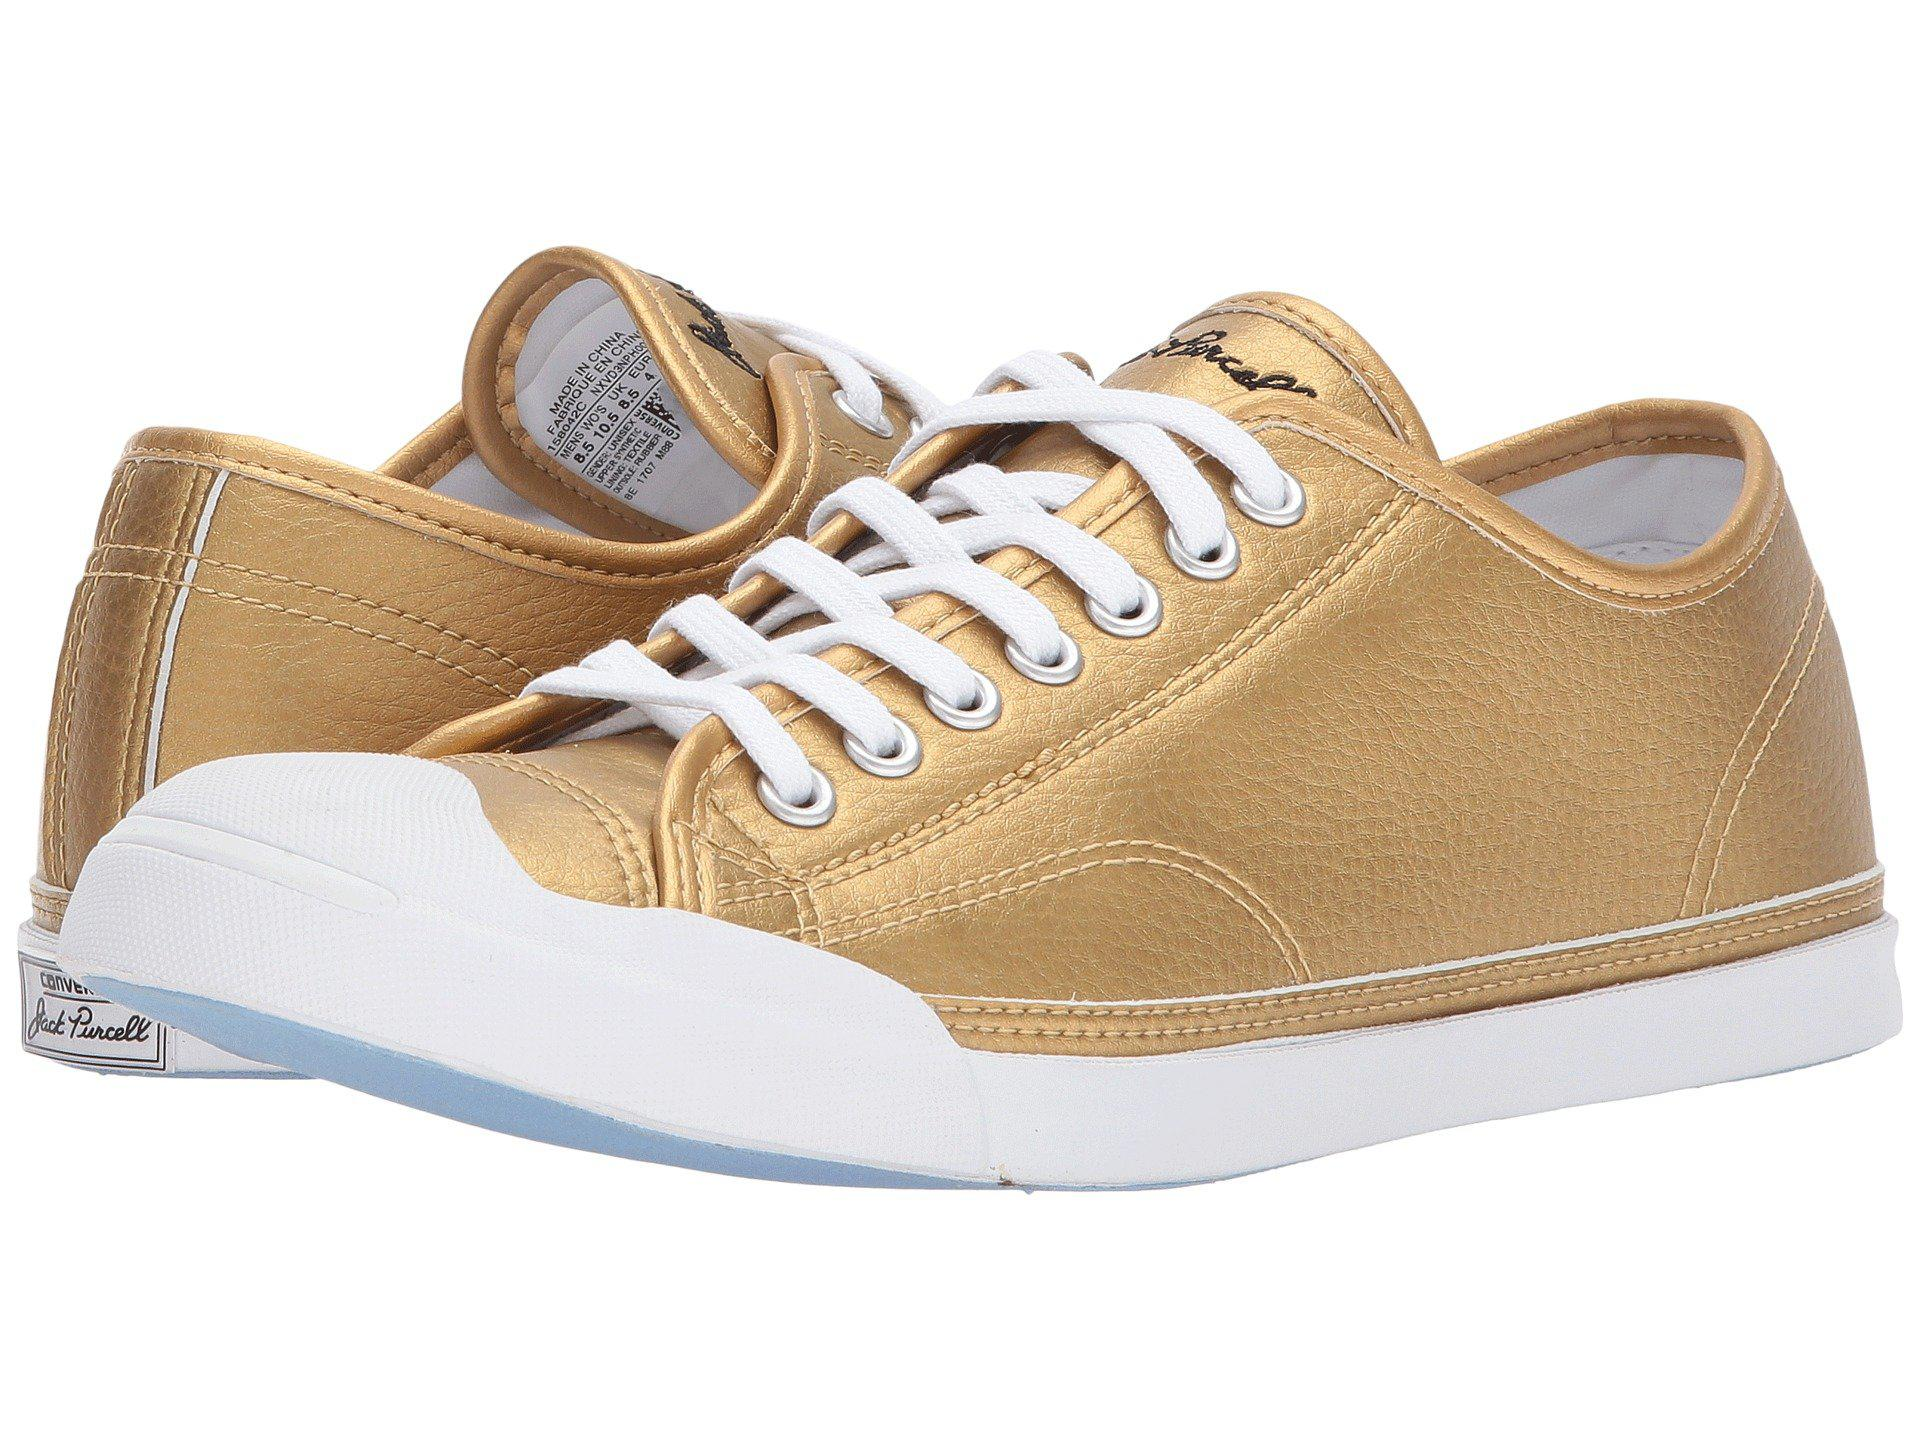 Lyst - Converse Jack Purcell® Lp Metallic Leather Ox - Save 32% 90ab5ec43d